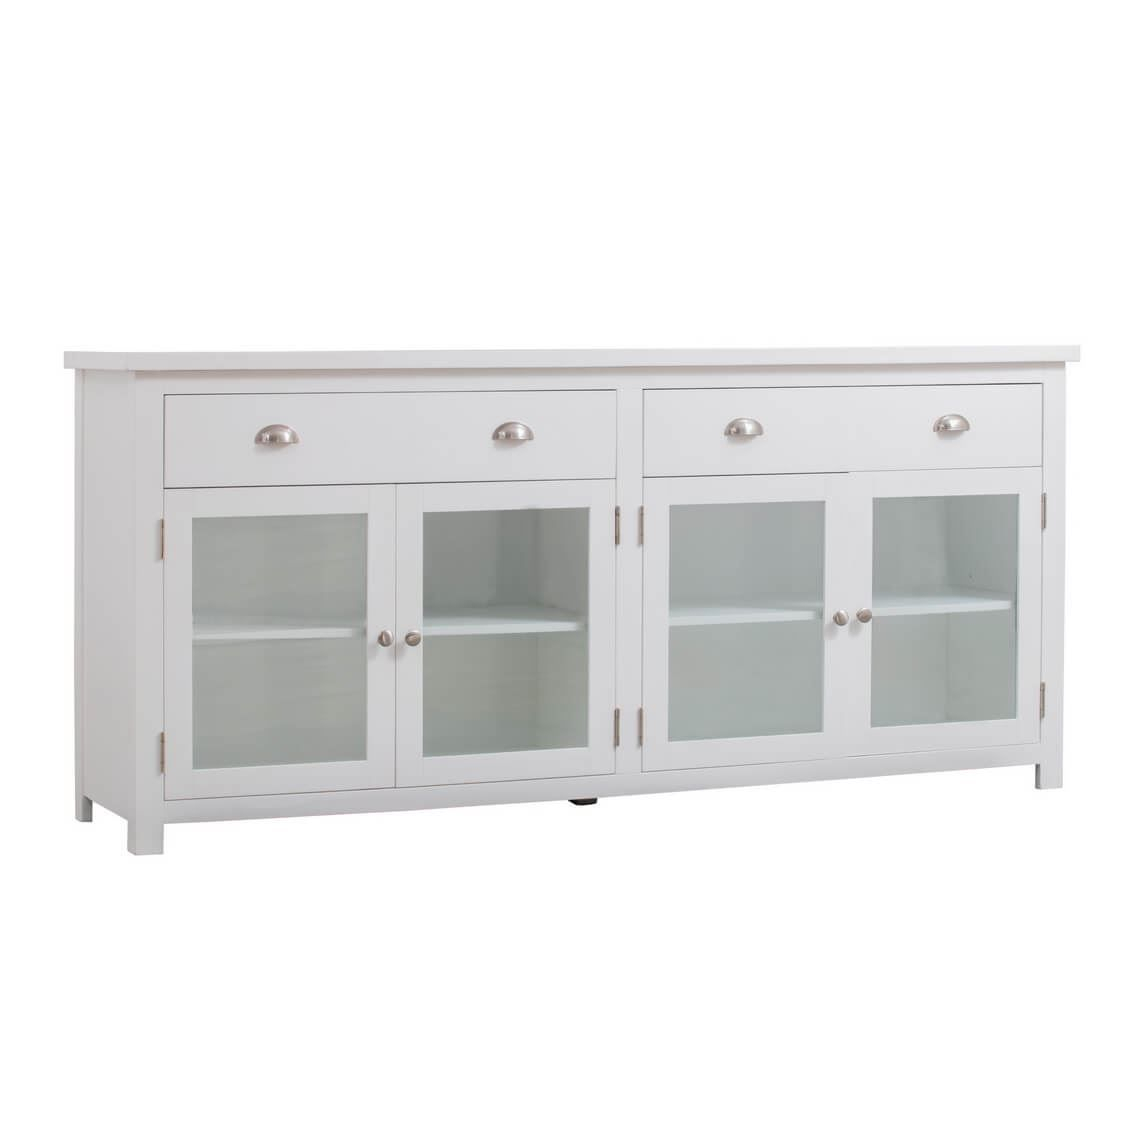 East Port Buffet, Crisp White | Products In 2019 | Buffet Regarding Amityville Sideboards (Image 23 of 30)